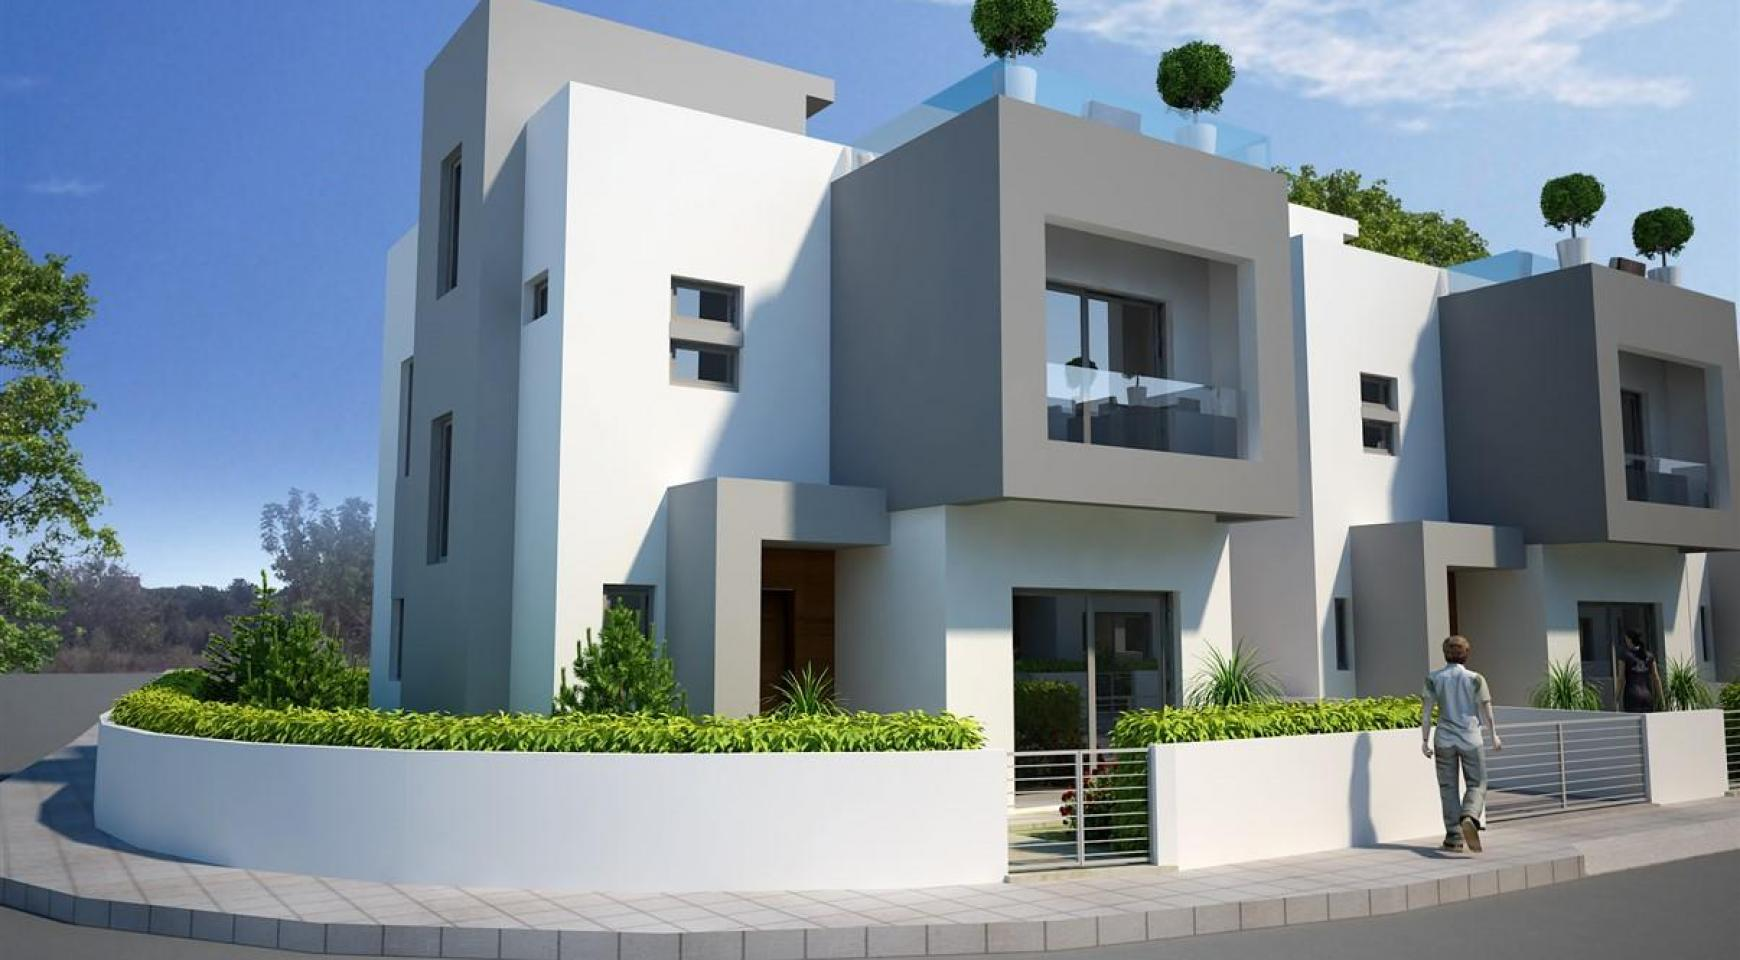 3 Bedroom Villa in a New Project - 27